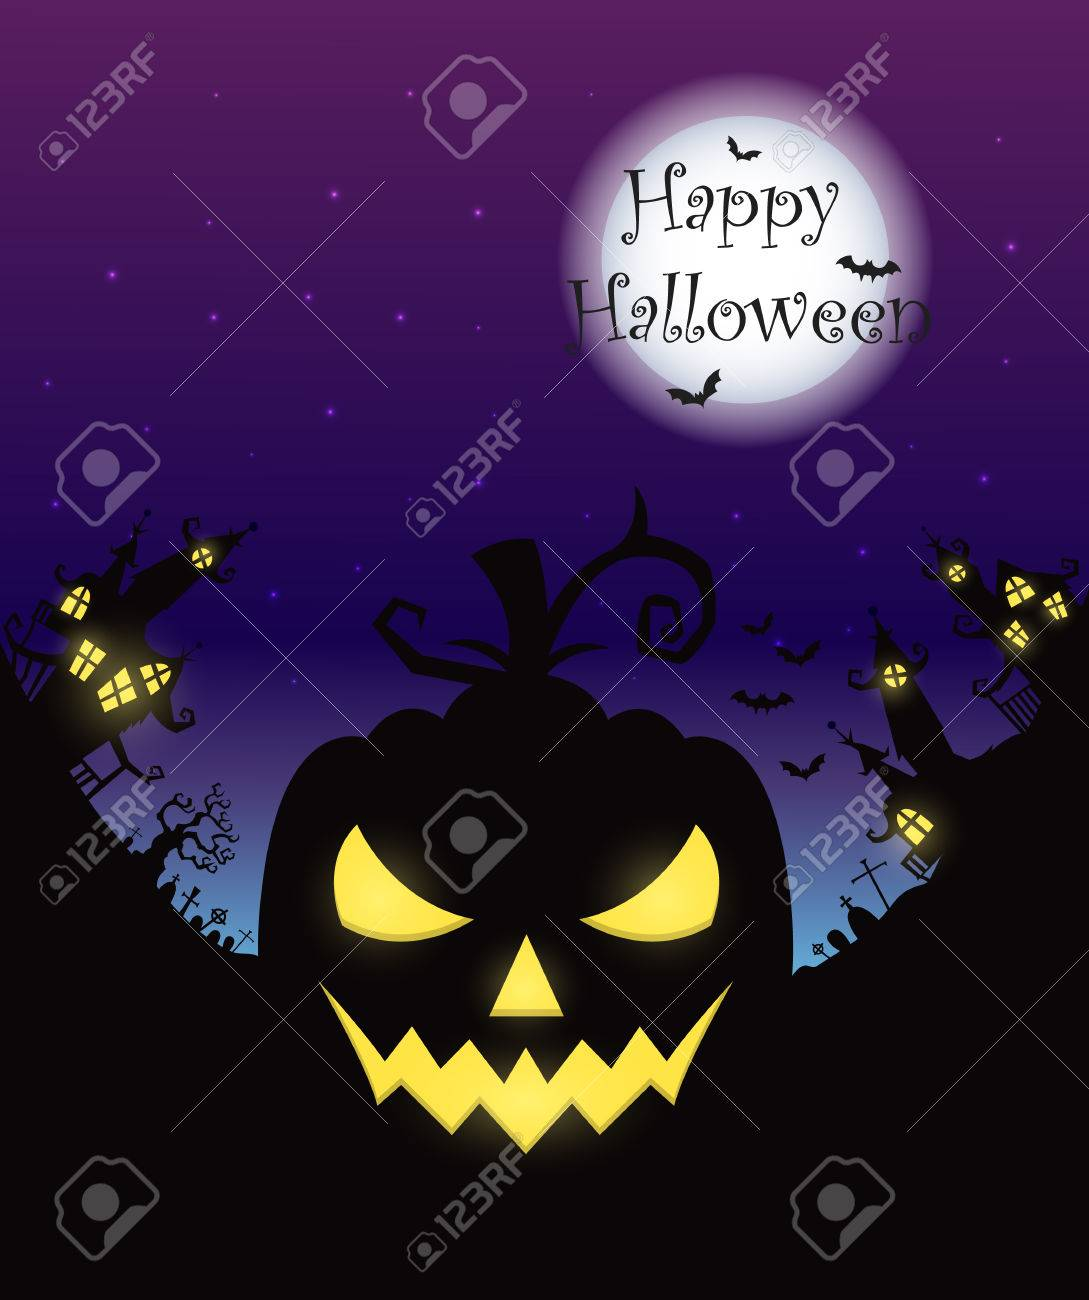 Vector Halloween Night With Pumpkins Scary Face And Creepy City ...